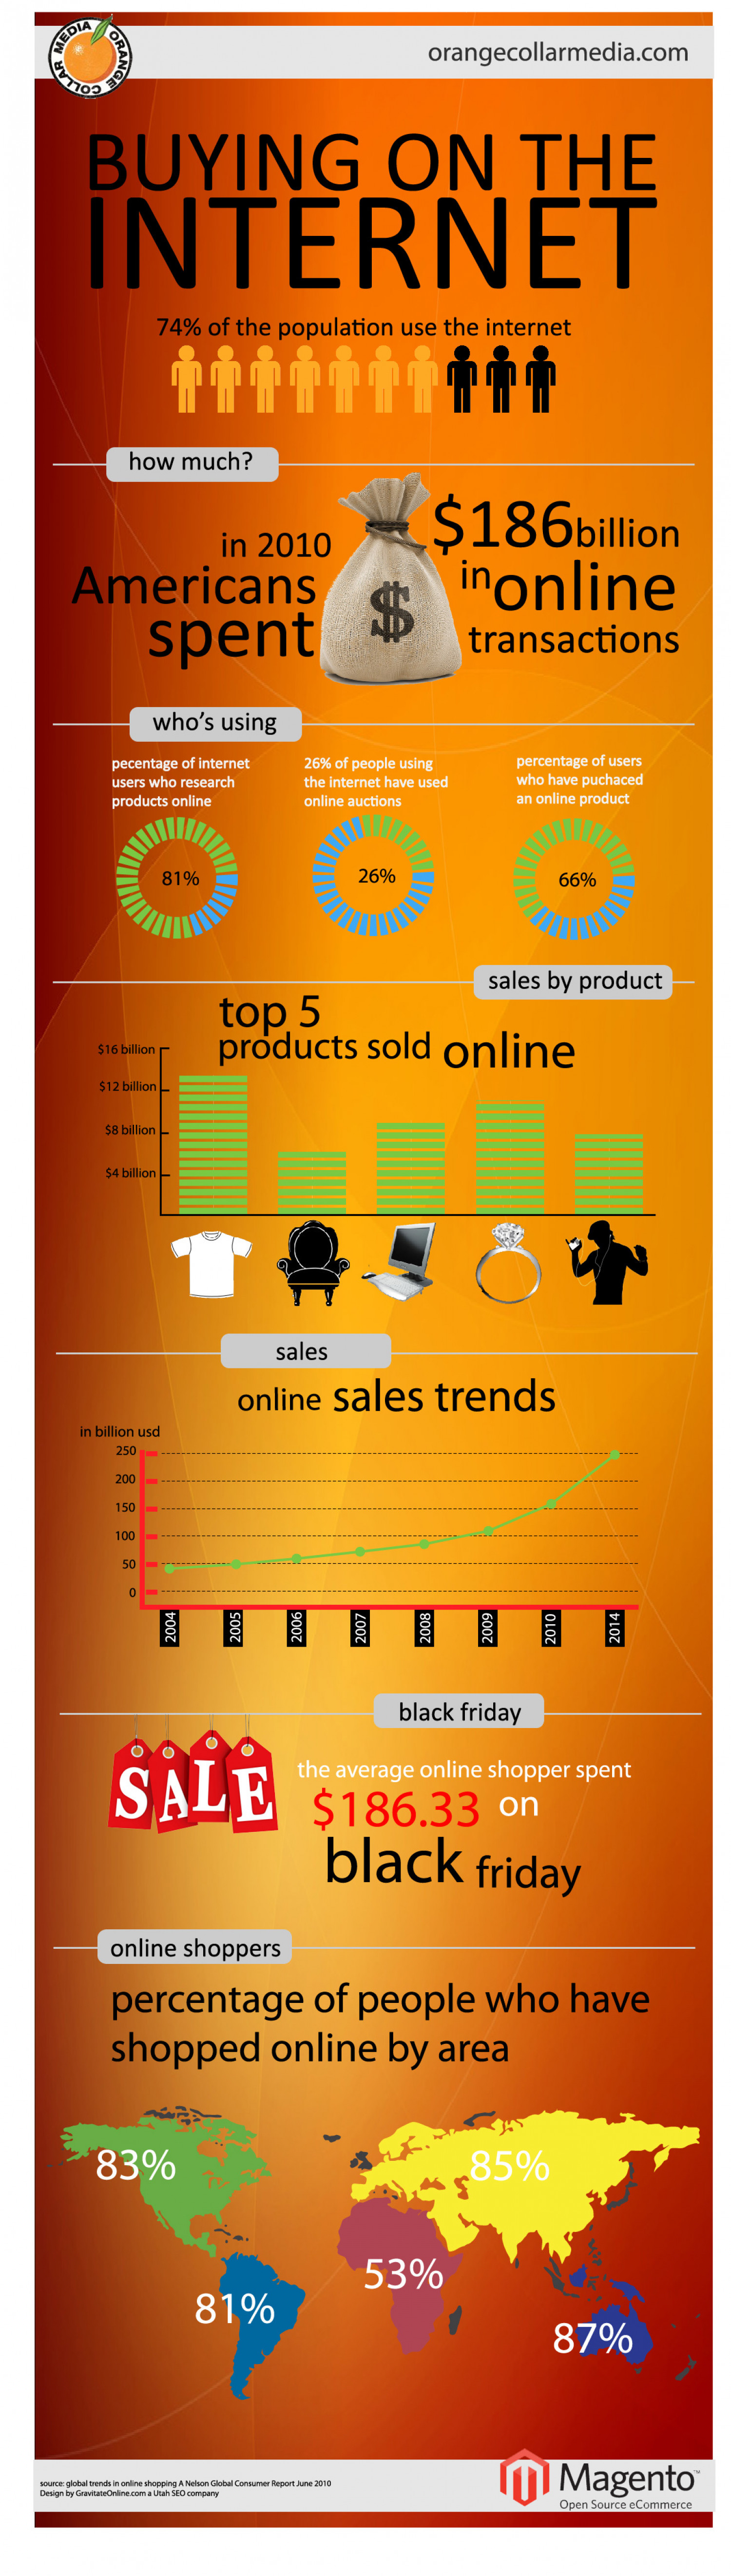 Online Shopping Statistics Infographic